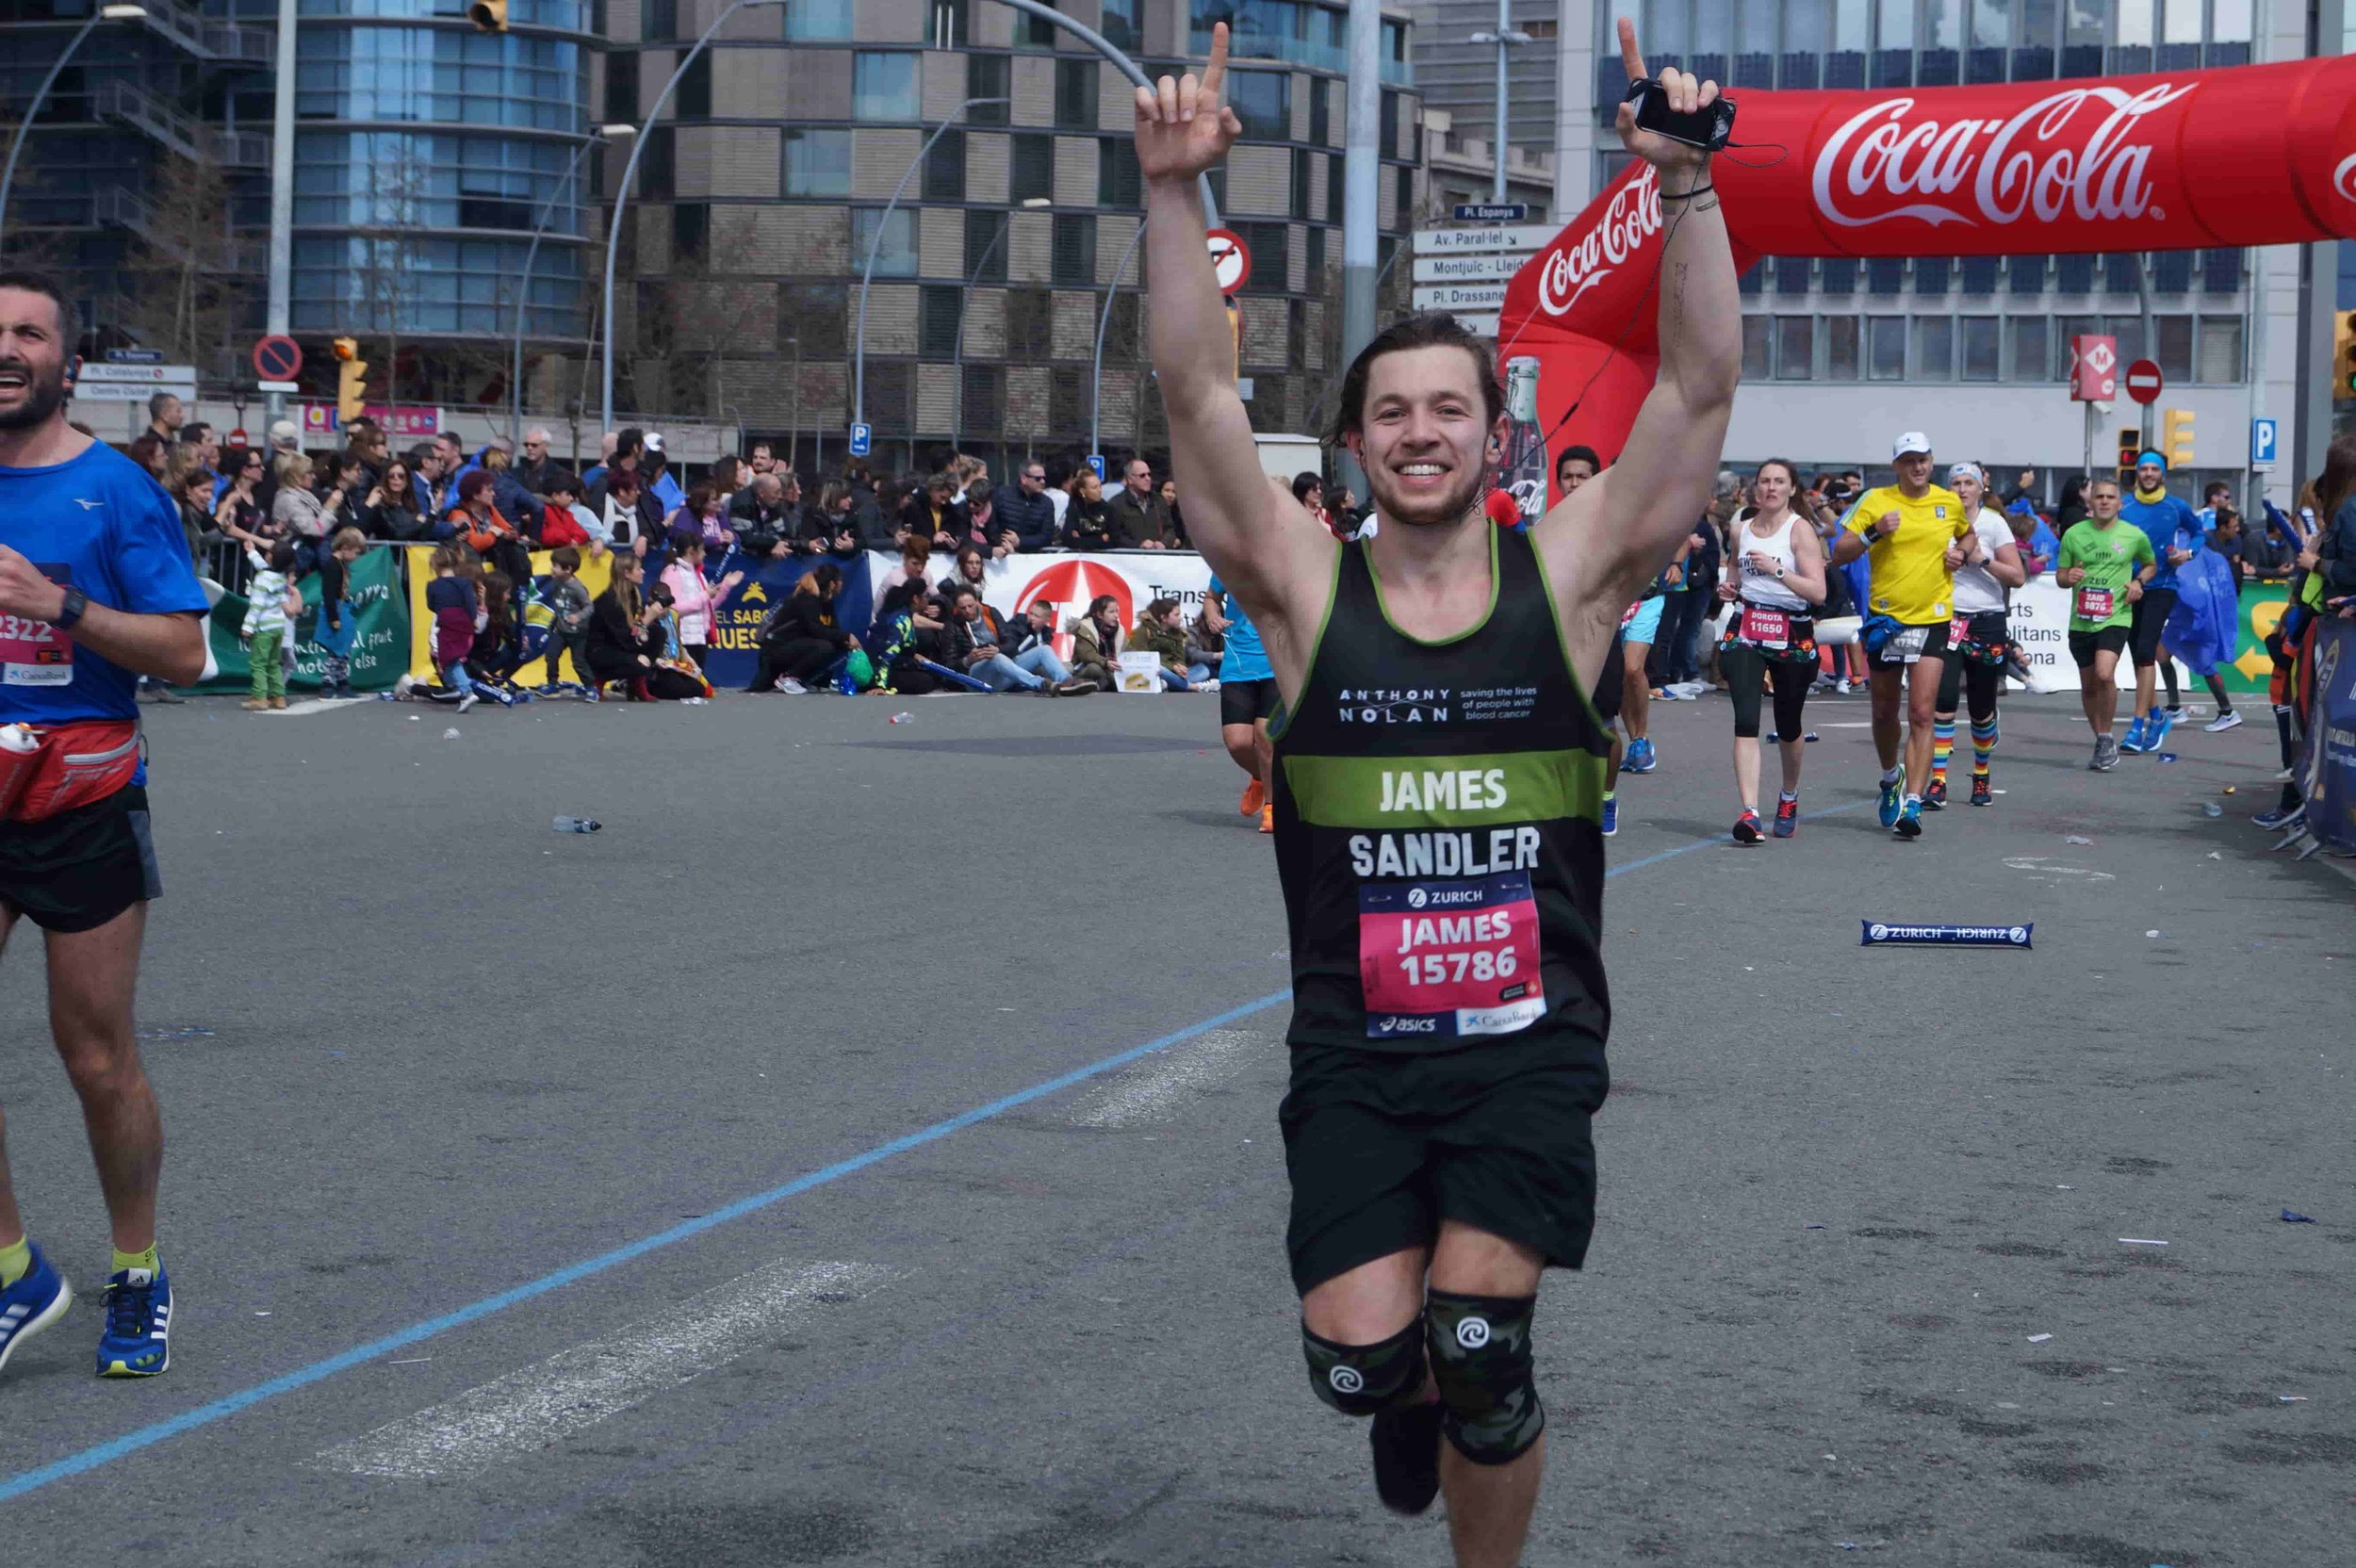 Edinburgh Marathon - Run in one of Europe's largest marathons